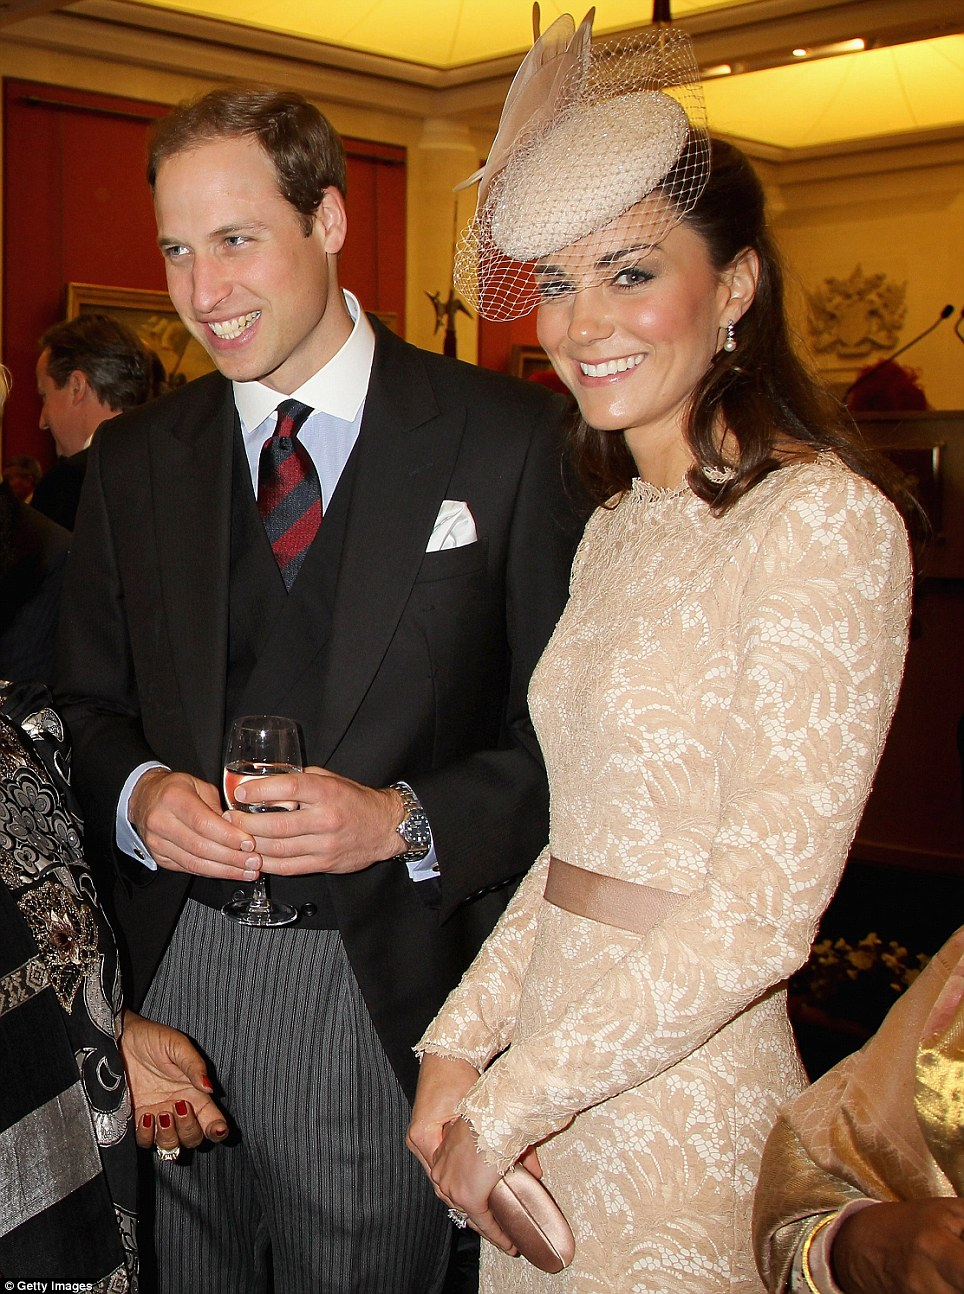 The Duke and Duchess attended a Jubilee reception at the Guildhall following the morning service